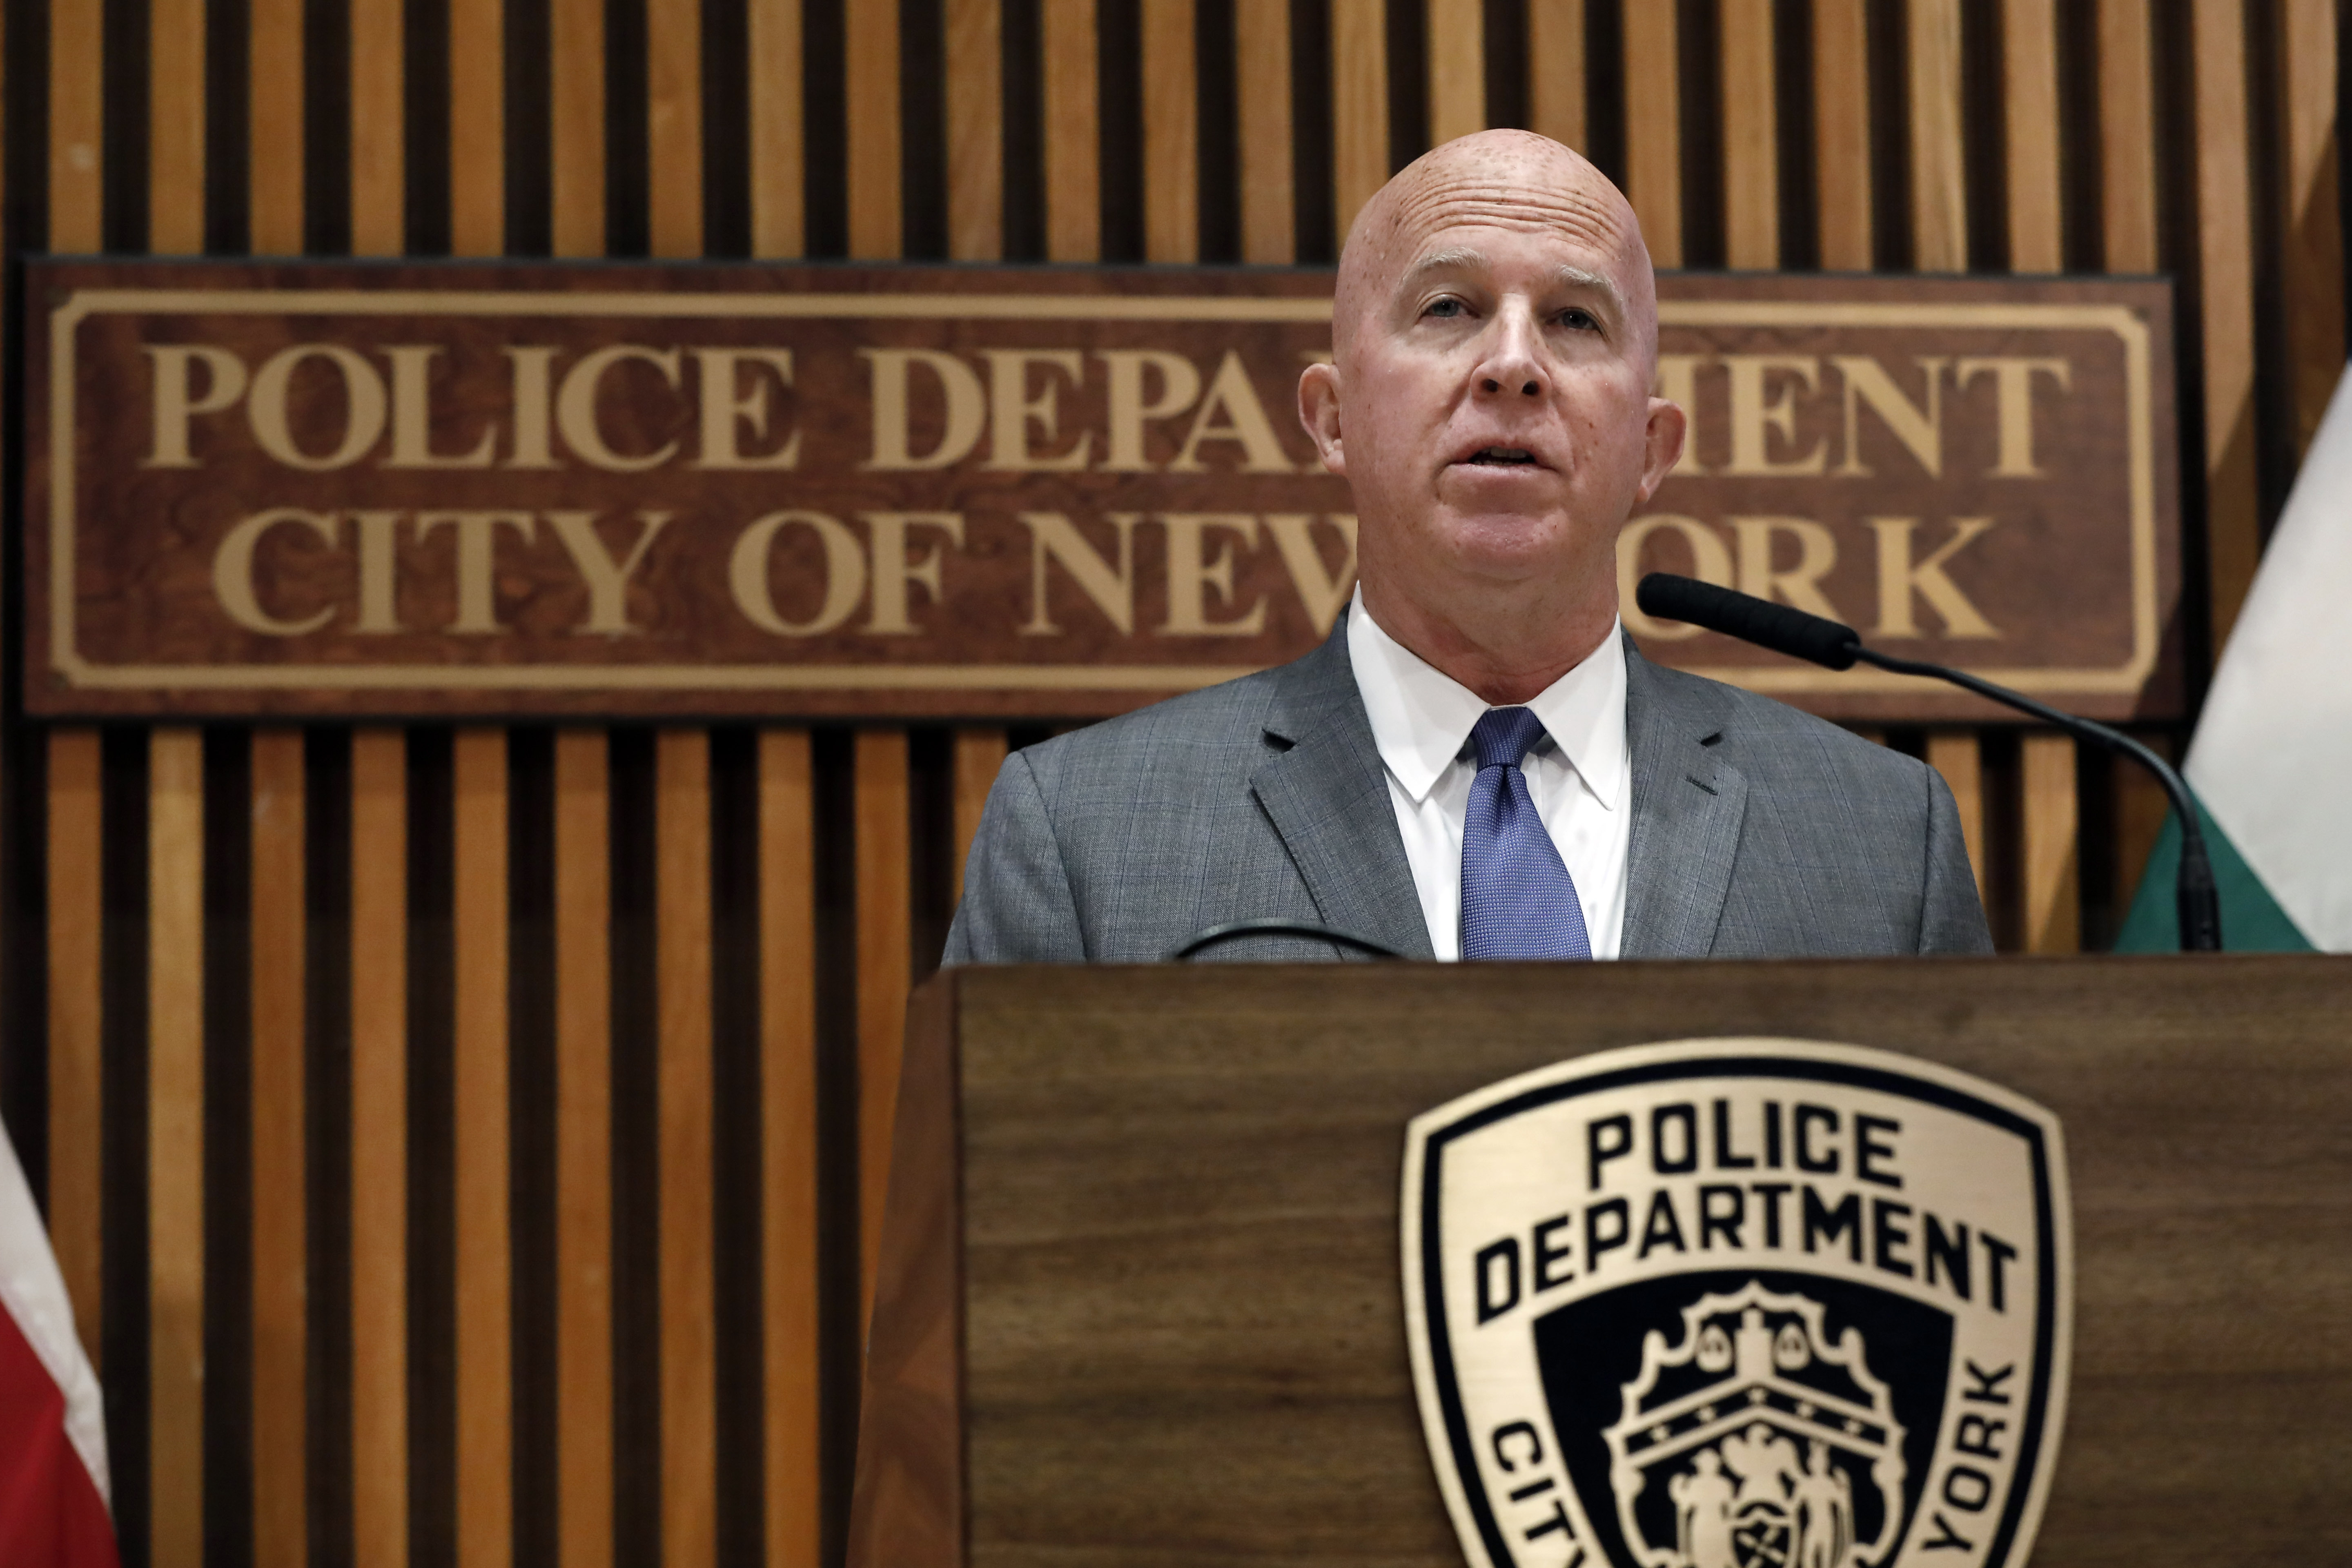 NYPD fires officer 5 years after Garners chokehold death